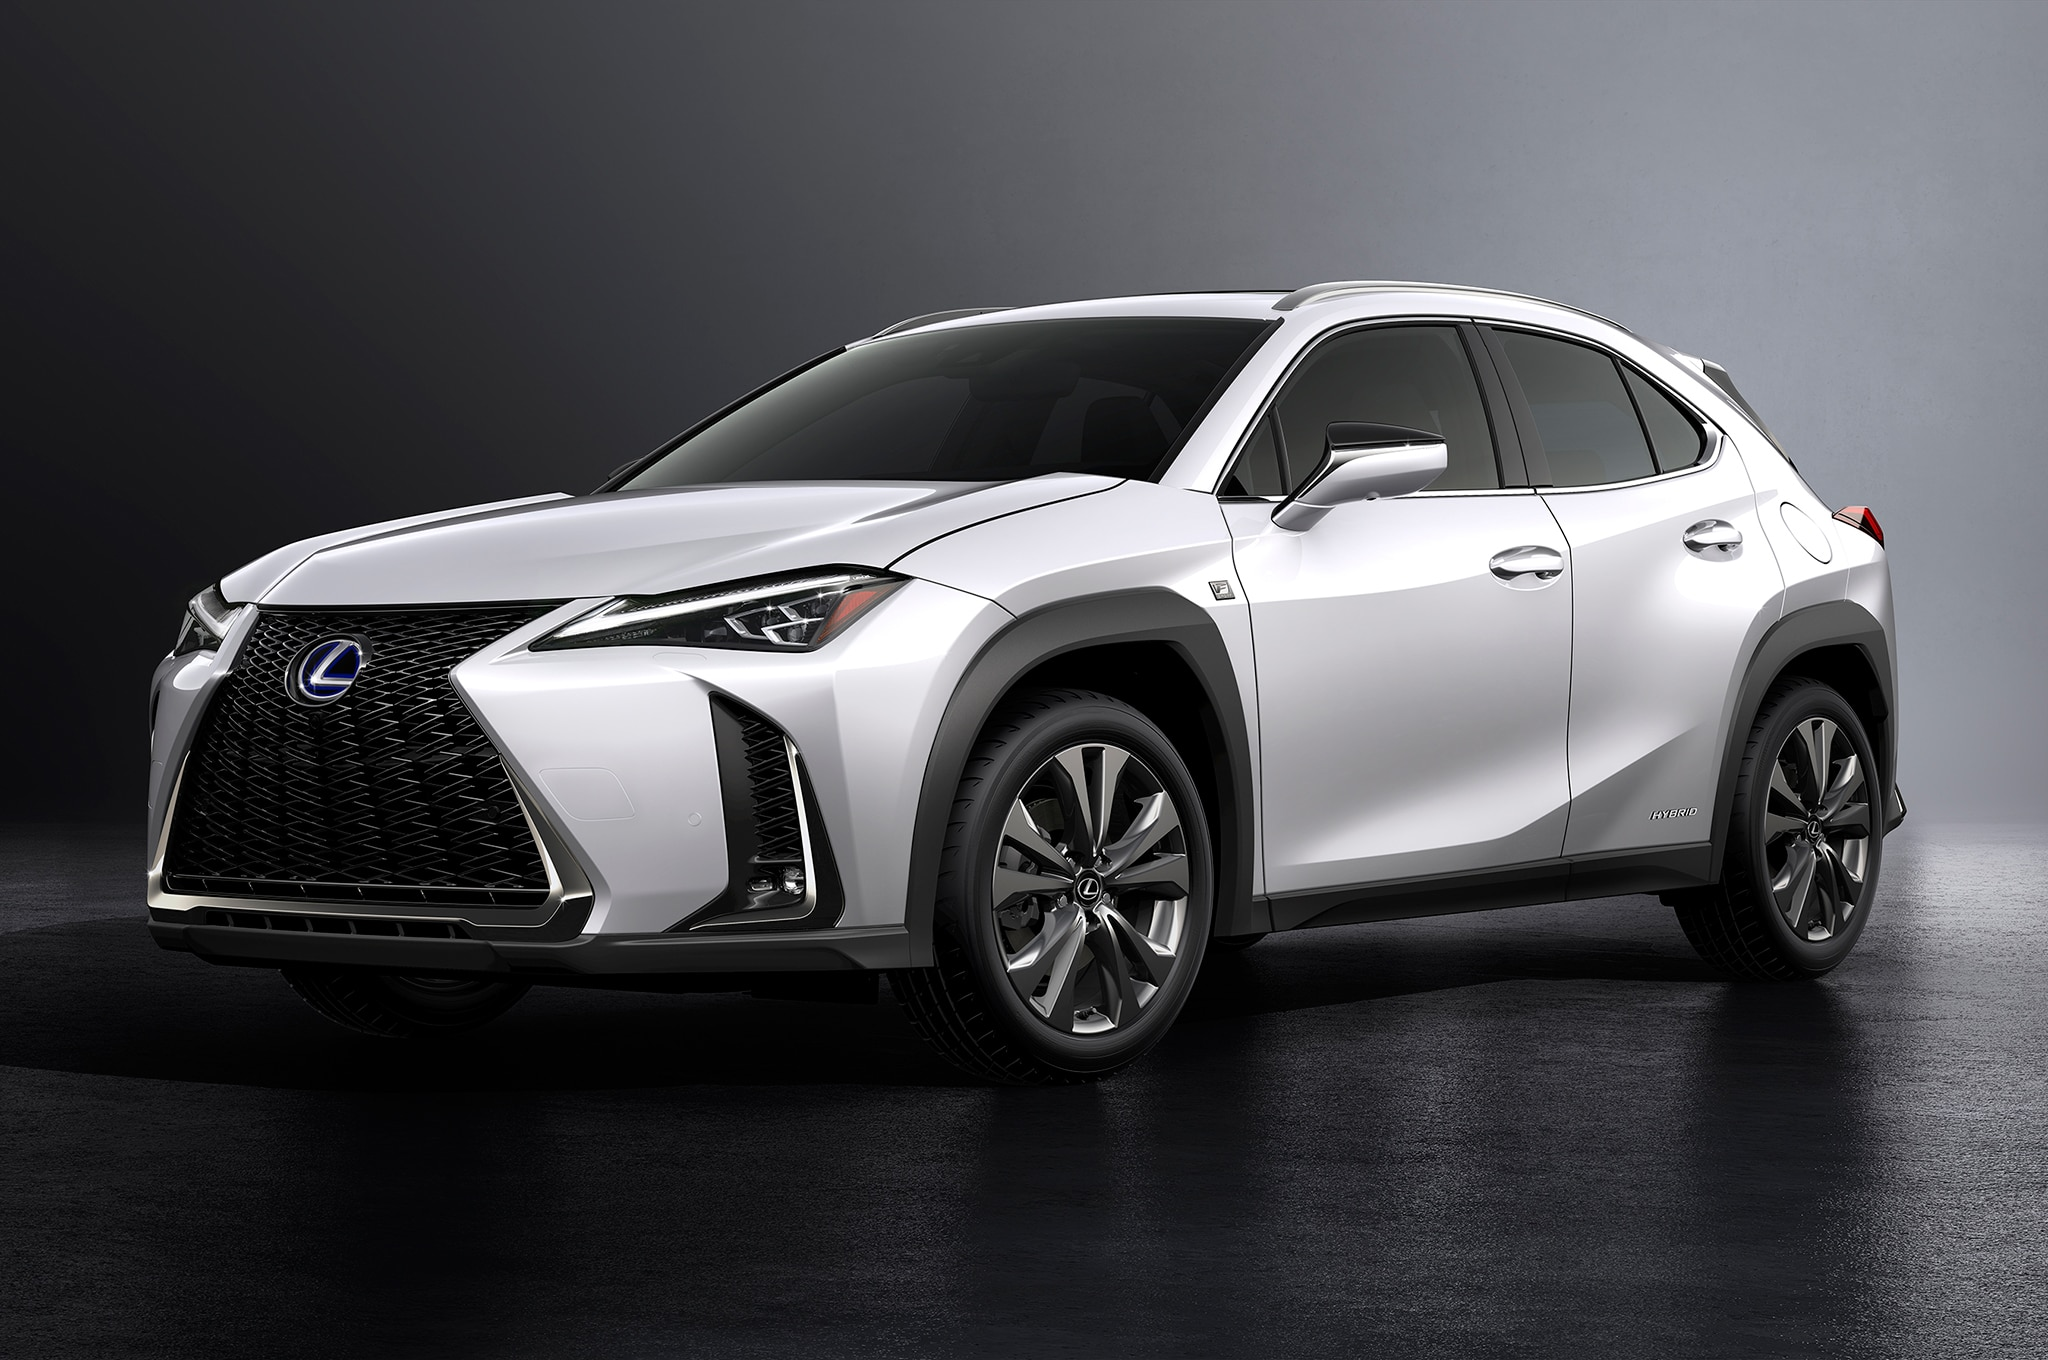 Lexus UX: the downsized luxury crossover